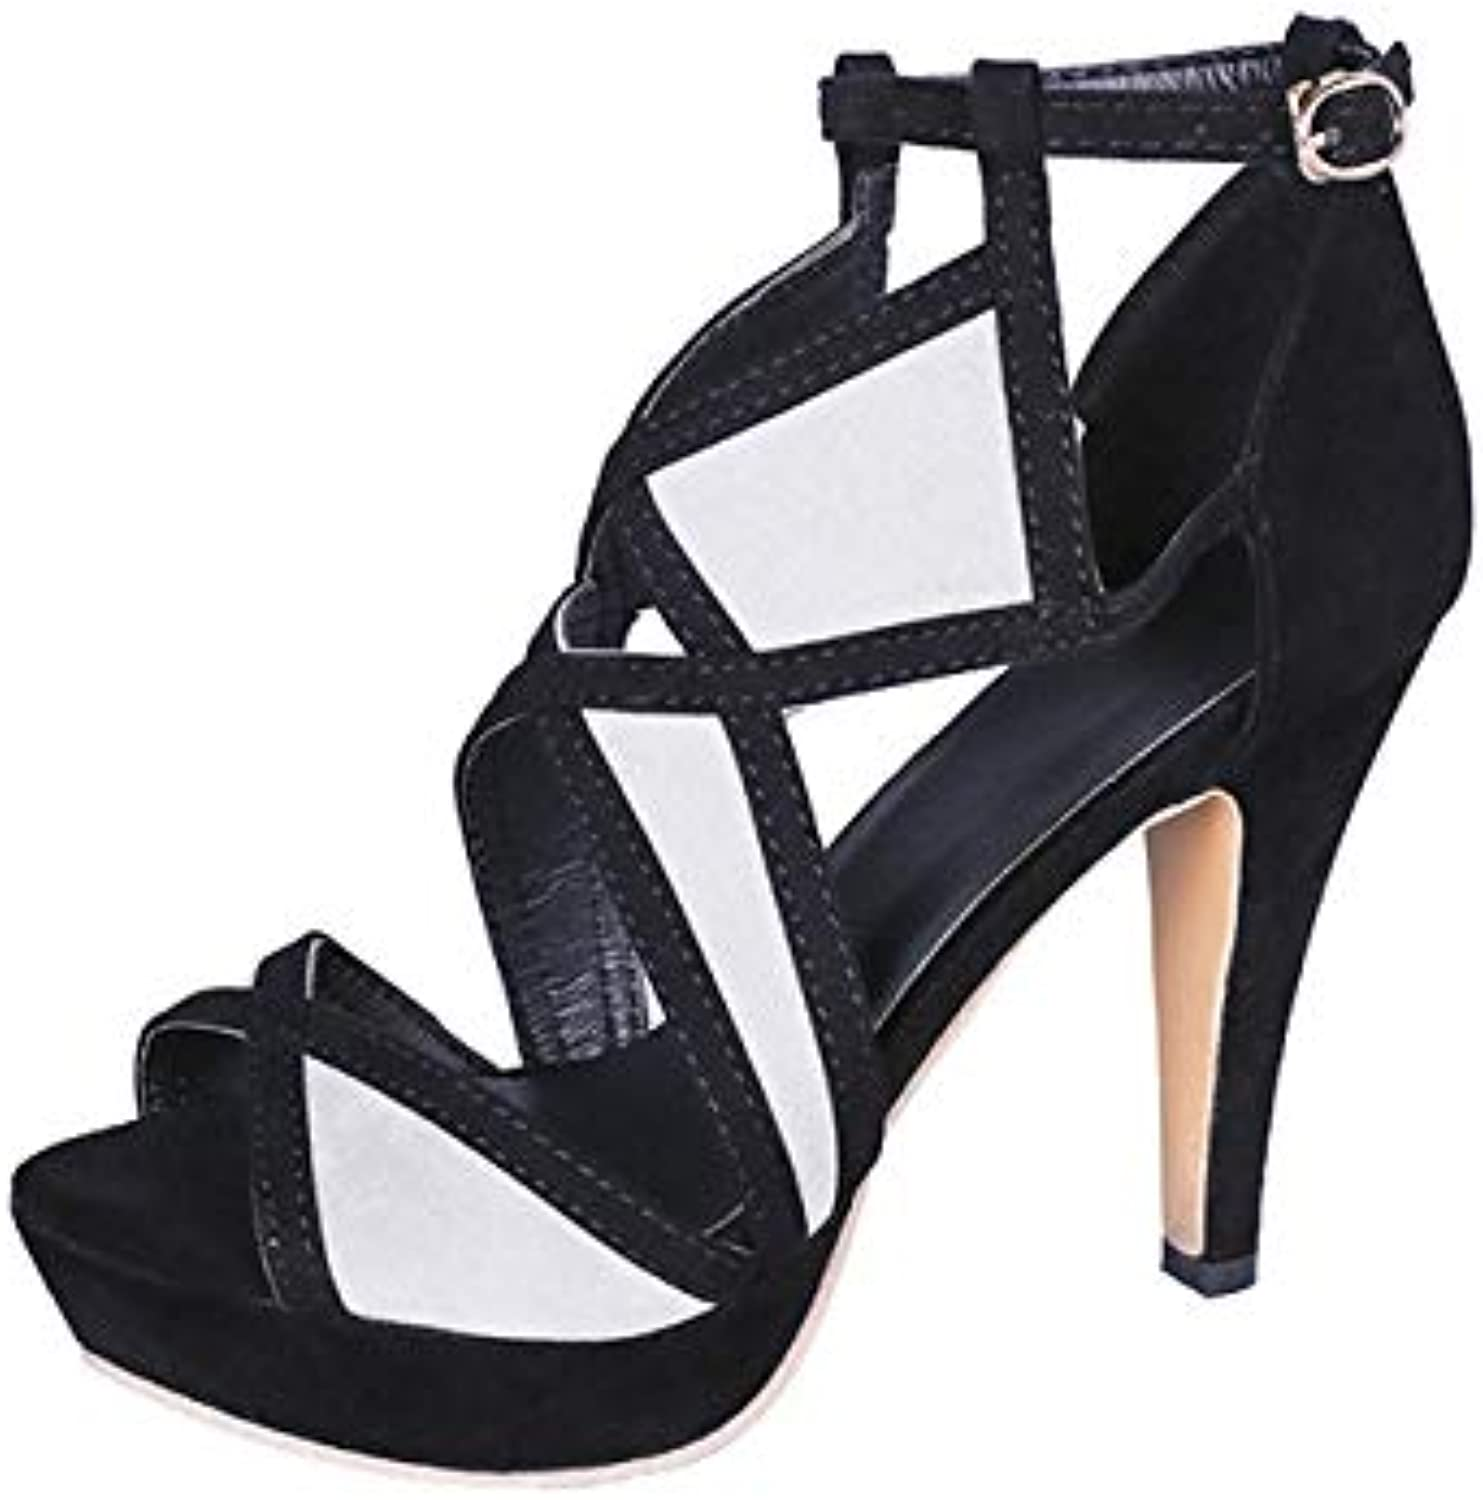 Women's Sandals Peep Toe High Heel Suede Credver Ankle Strap Block Buckle shoes for Lady Chunky Pointed Pumps shoes for Night Club Party